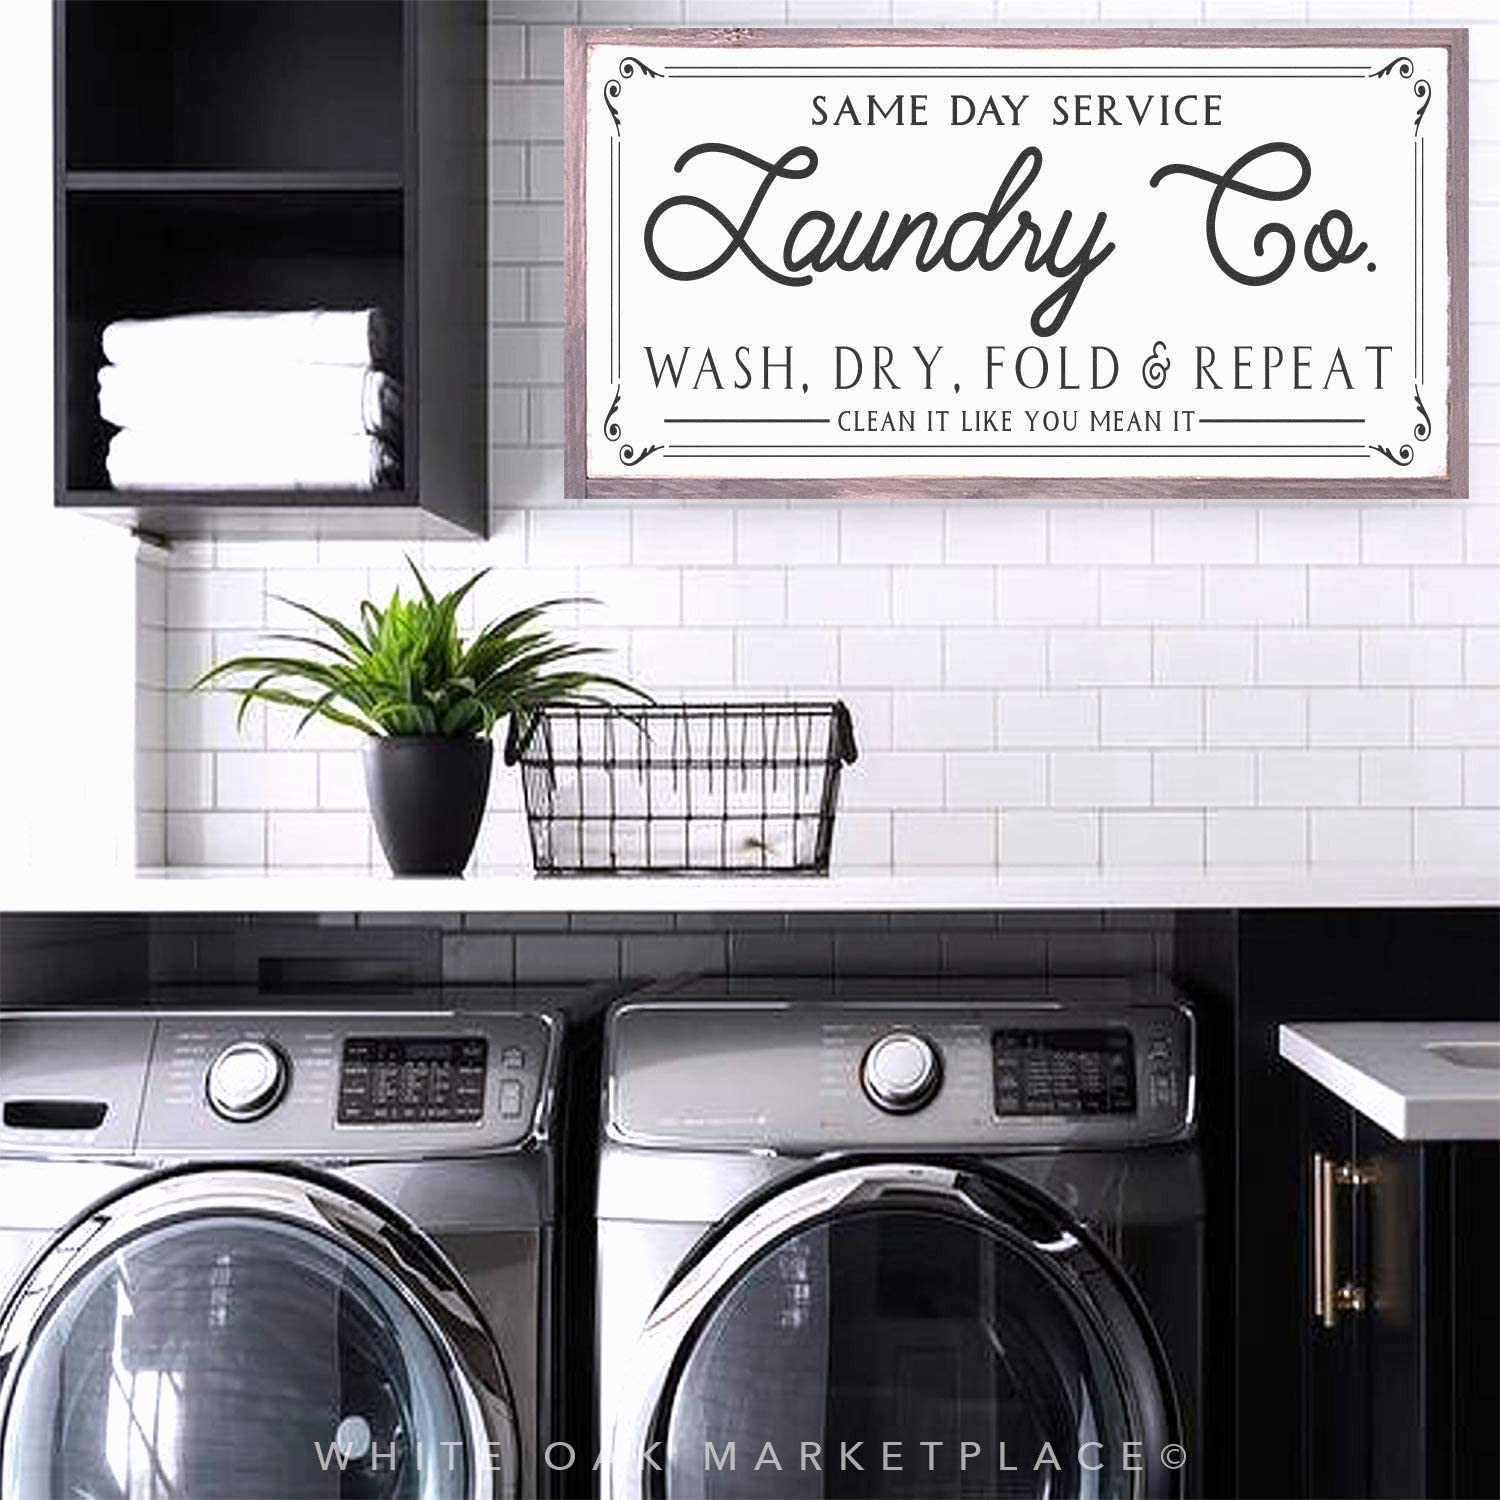 Atwo3242de Laundry Co Farmhouse Sign Laundry Signs Laundry Room Sign Laundry Room Decor Farmhouse Signs Farmhouse Decor Gift Sign Wood Sign Amazon Co Uk Kitchen Home